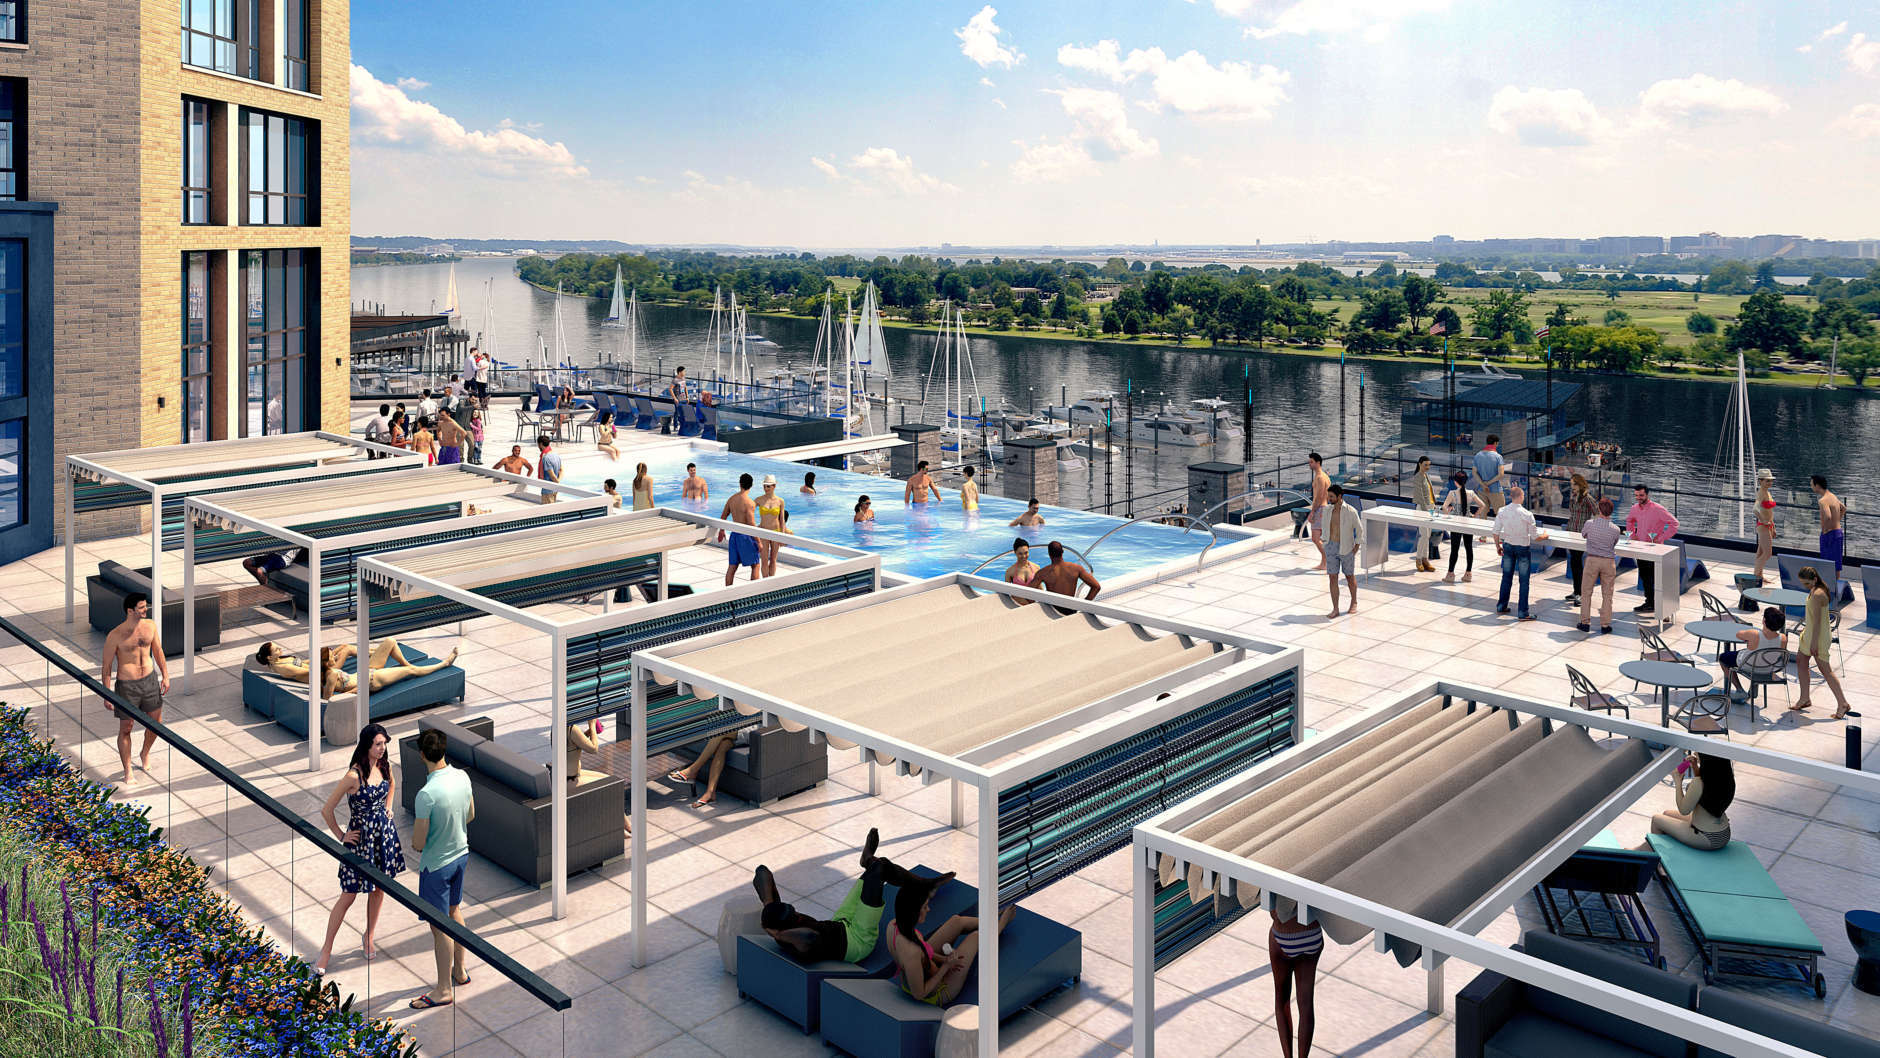 The Channel's pool deck overlooks the Potomac River. (Courtesy The Wharf)